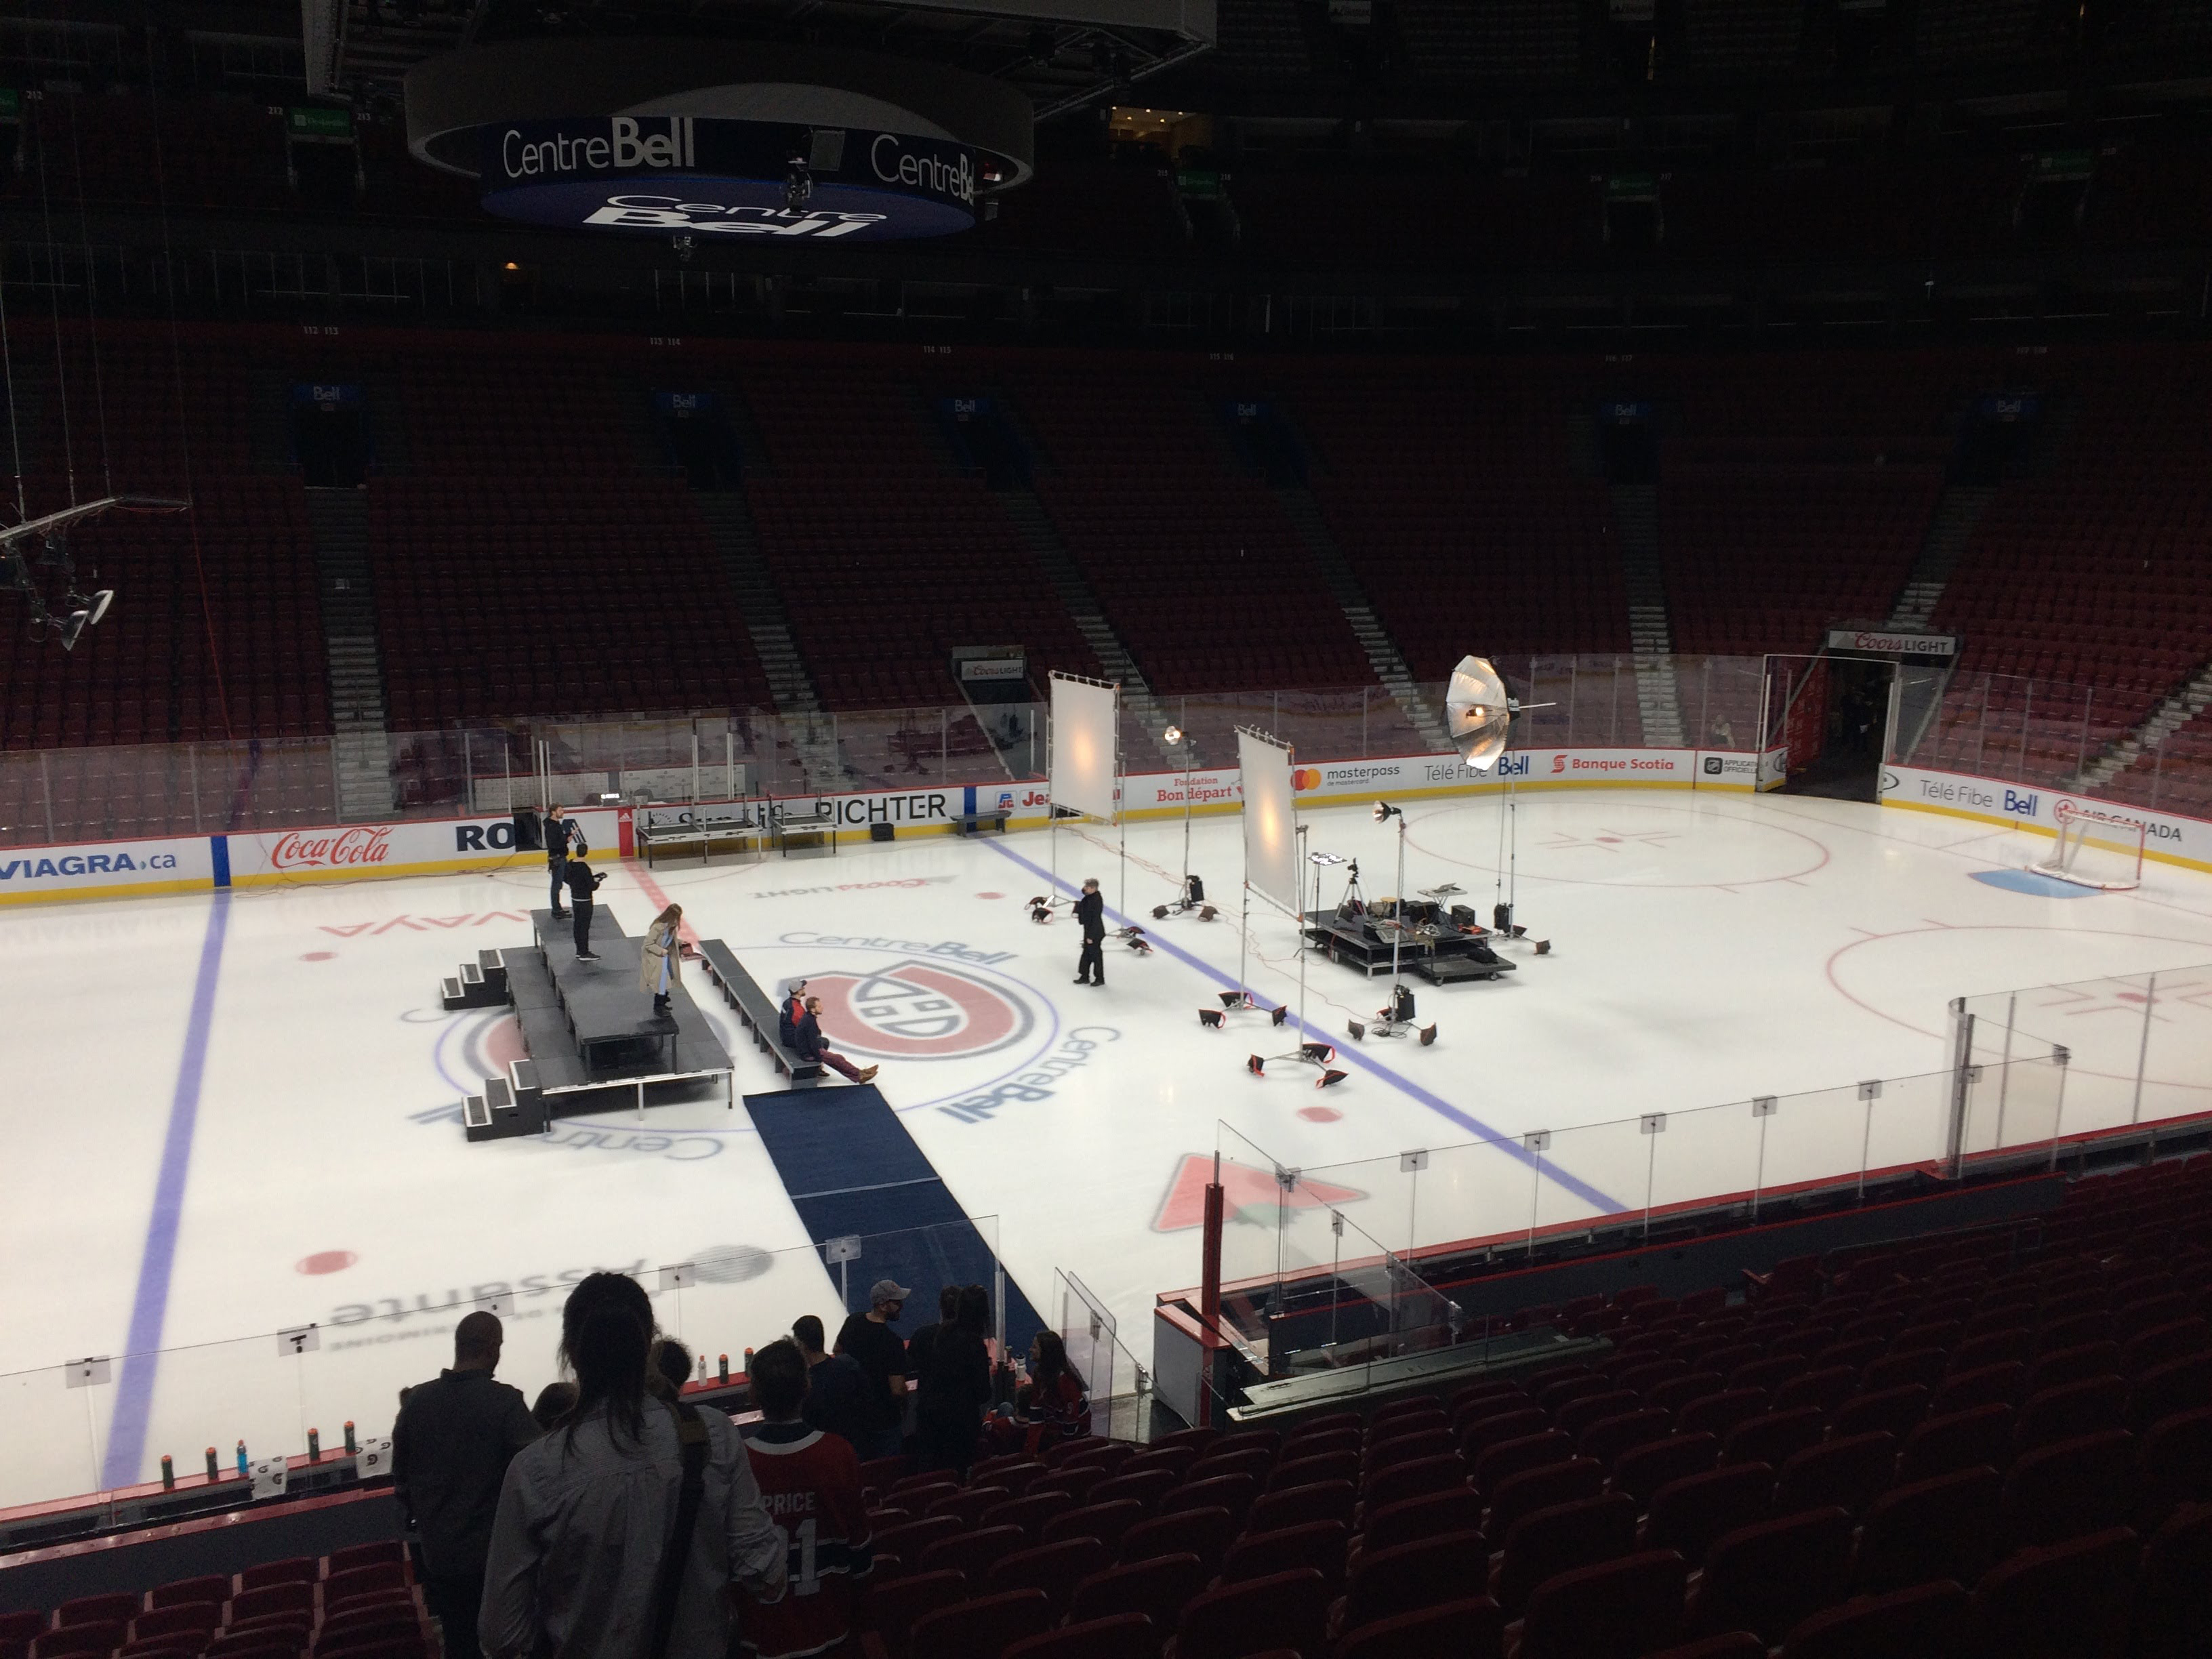 Montreal Bell Center, Montreal Canadiens official photo session